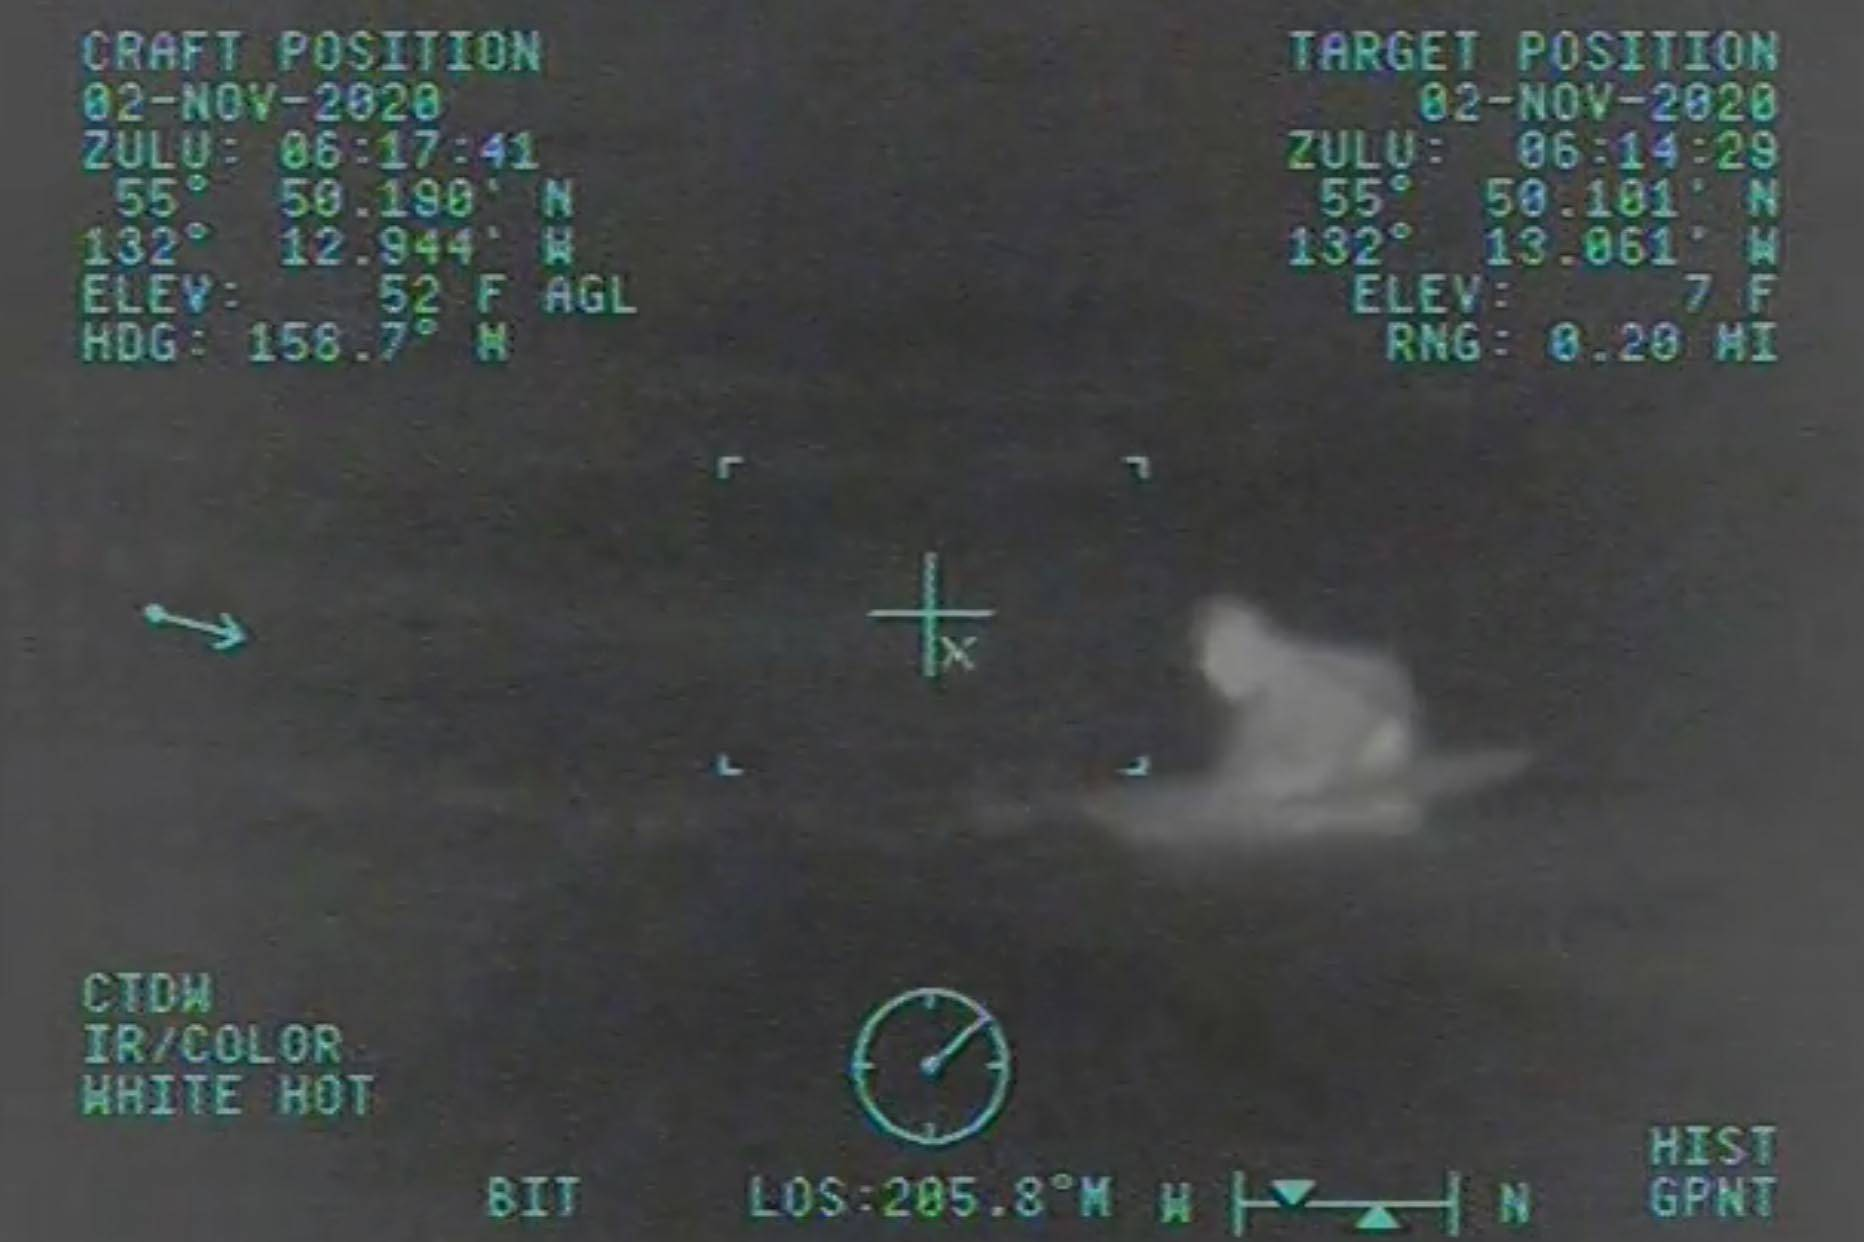 Coast Guard personnel from Coast Guard Air Station Sitka rescued a 70-year-old man from the water near Union Bay on Nov. 1, 2020. (Screenshot / U.S. Coast Guard)